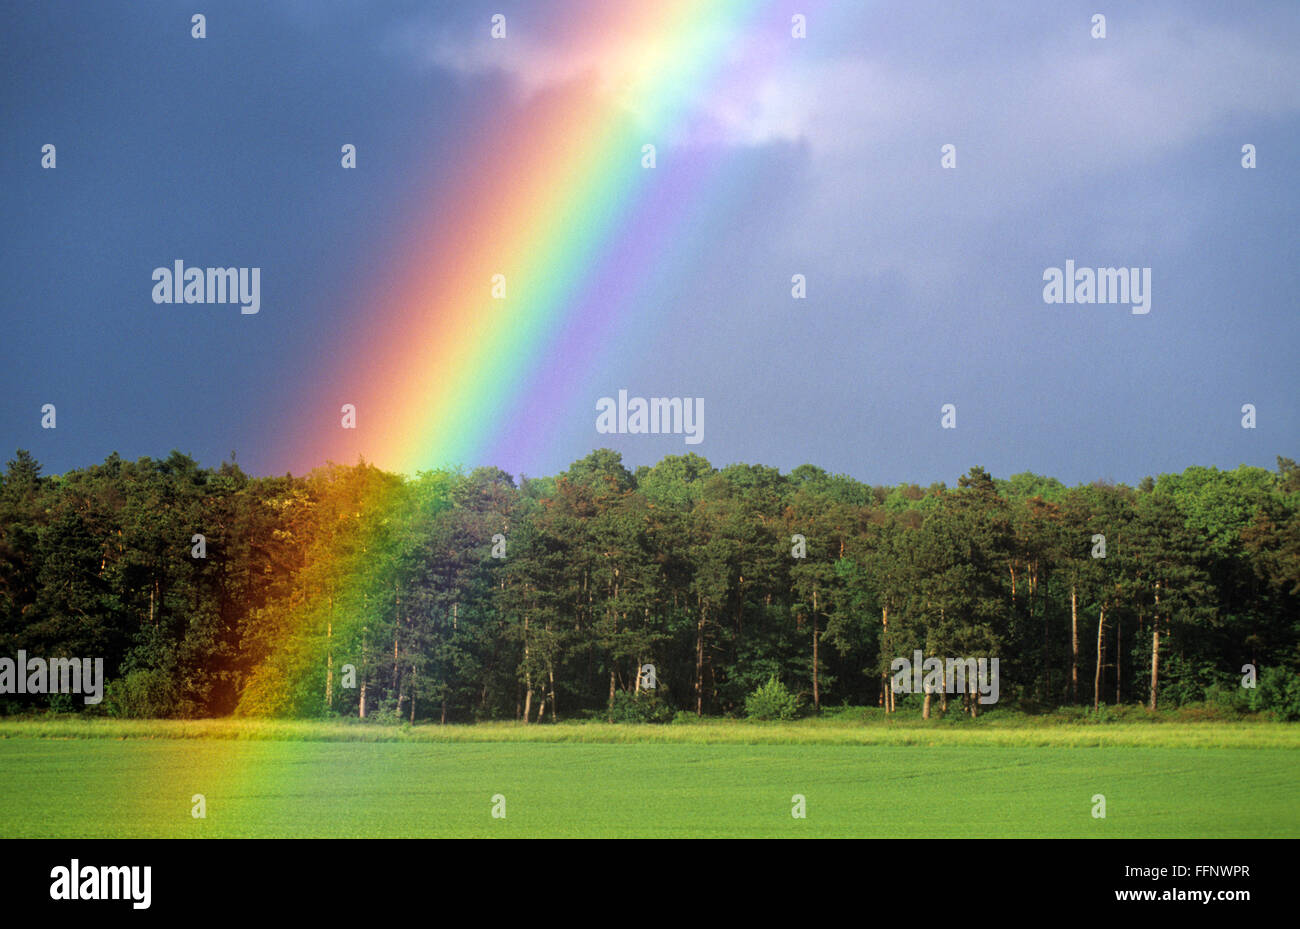 close rainbow in front of a forest - Stock Image